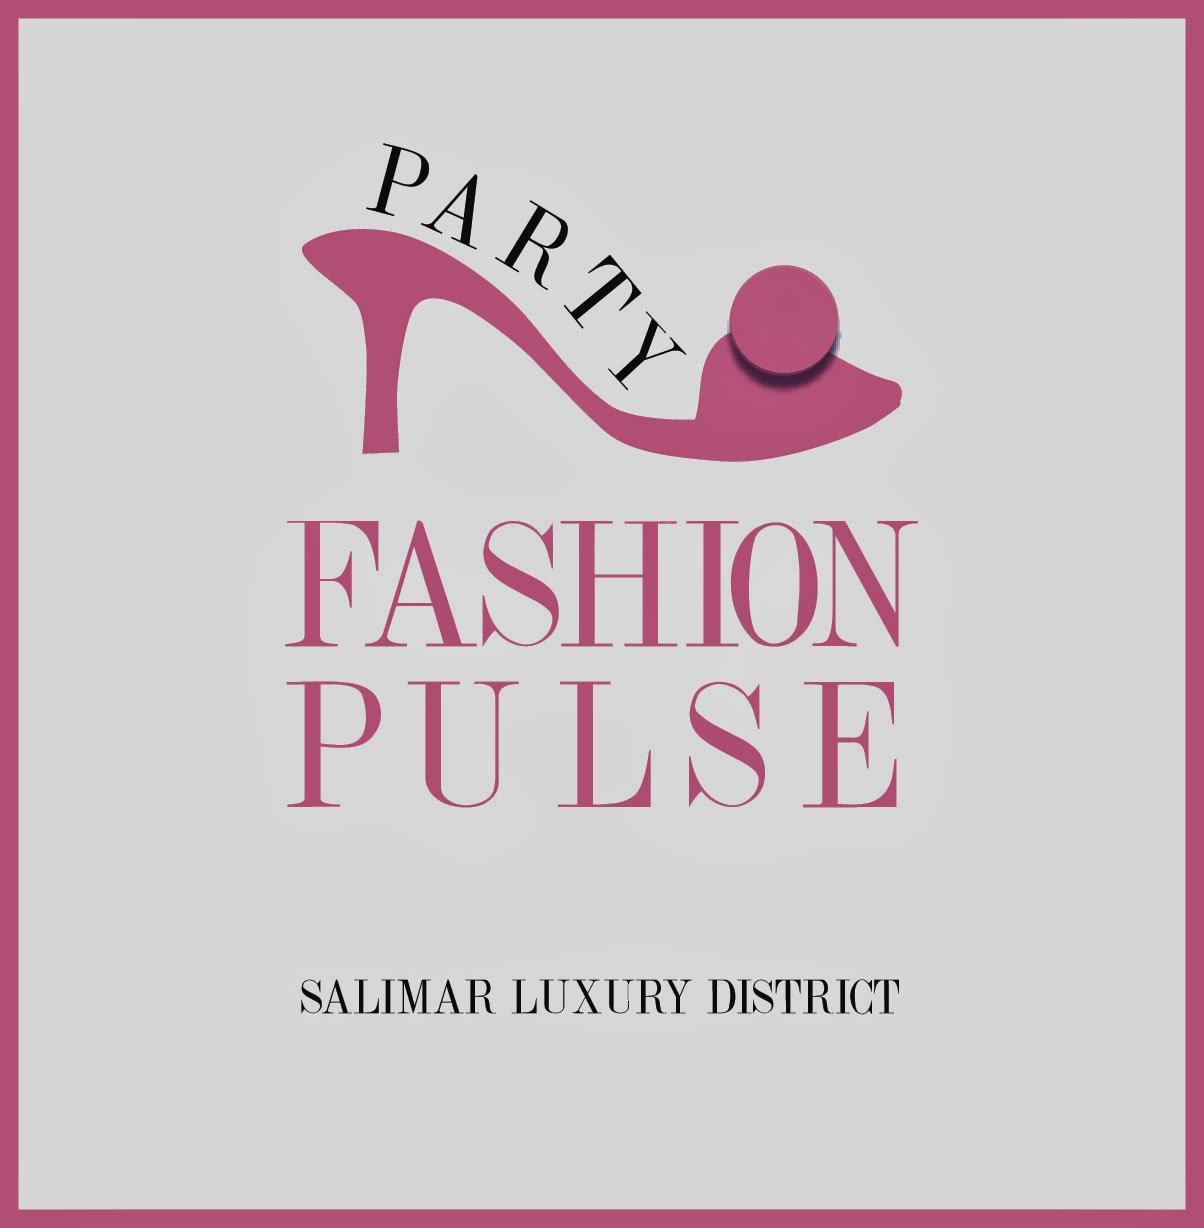 FASHION PULSE